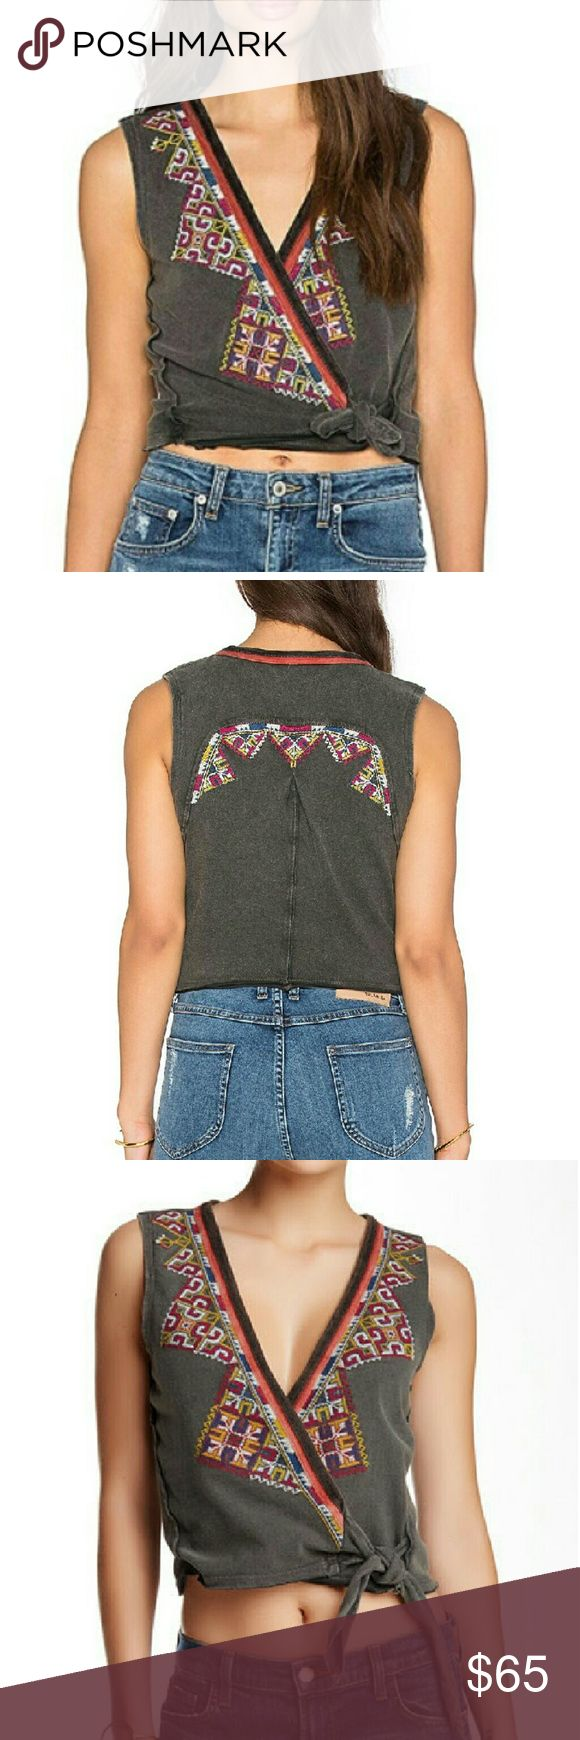 """Free People  """"Around The World Tank"""" NWT Free People Around The World Tank. Gorgeous cropped surplice top with needlepoint embroidery. Self tie closure. approx. 19' Length.  100% Cotton Free People Tops"""